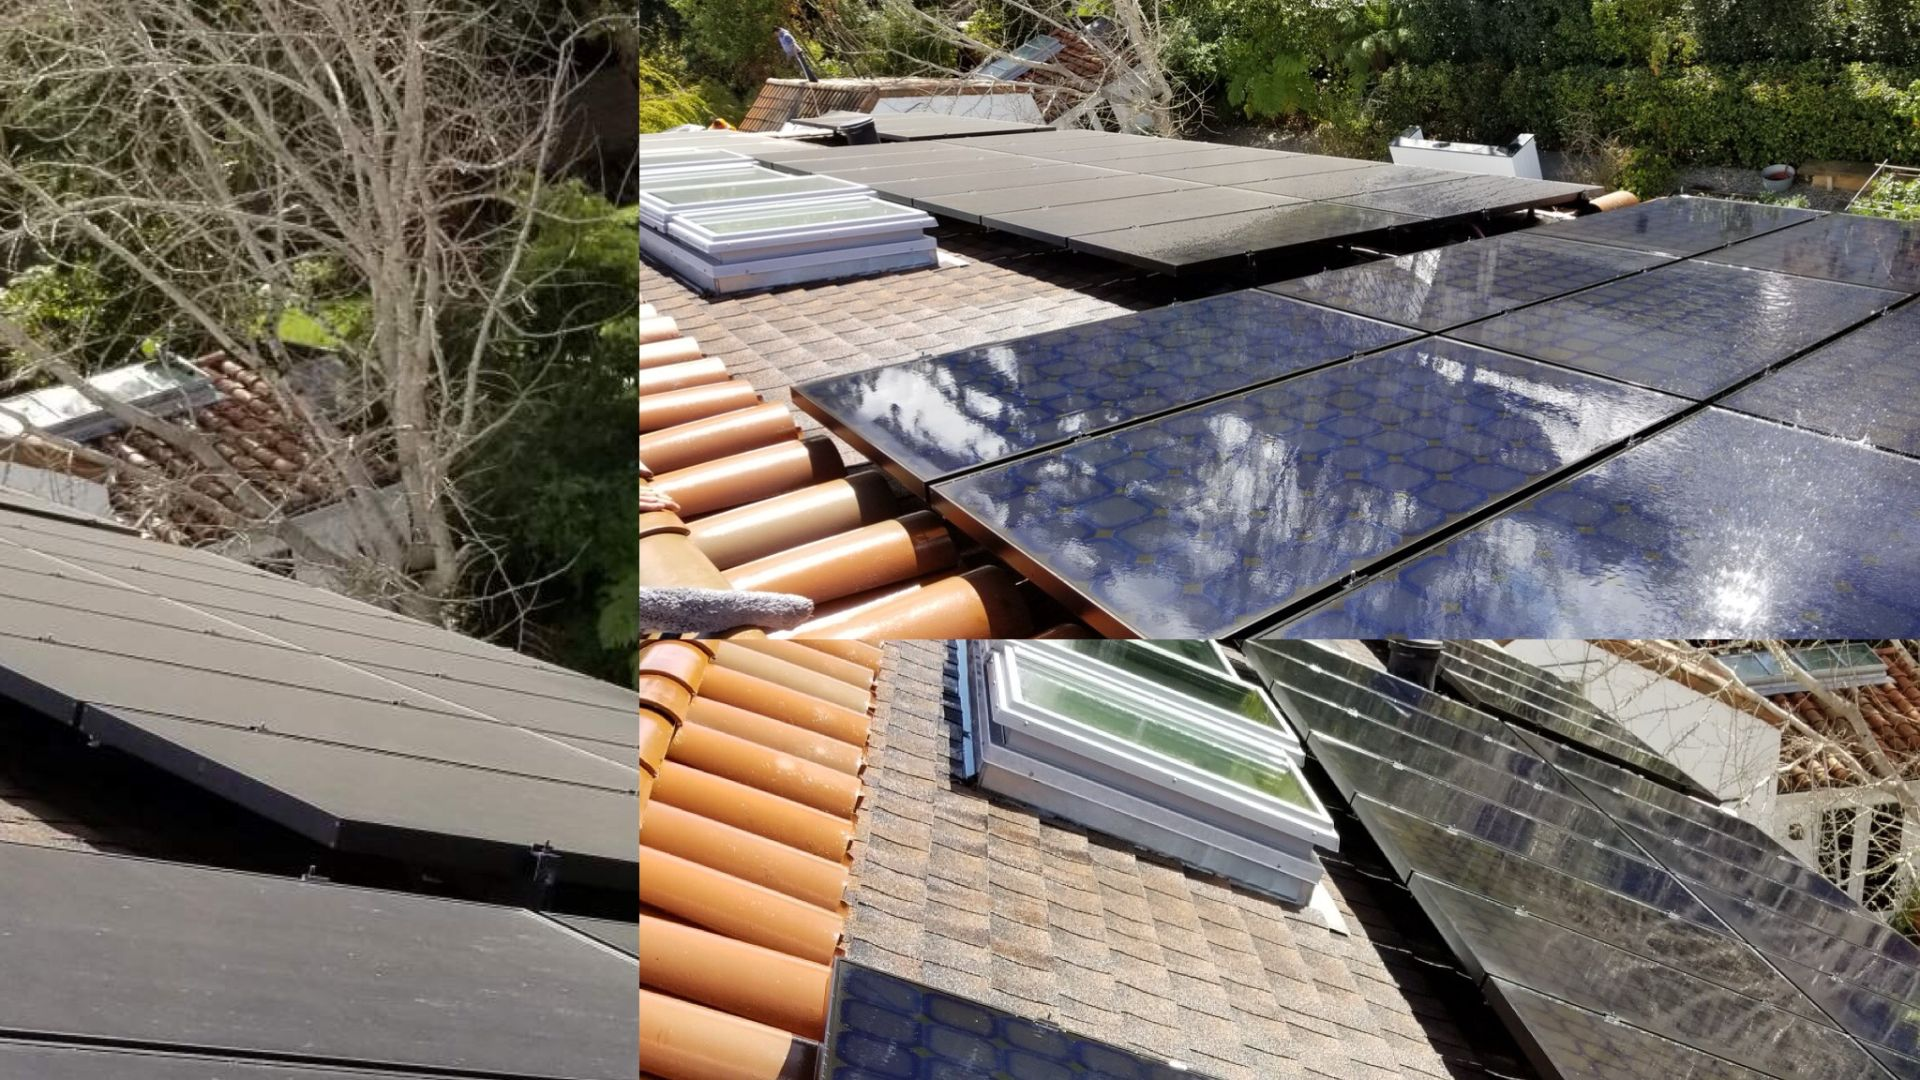 Why Our Tools are Better for Solar Panel Cleaning